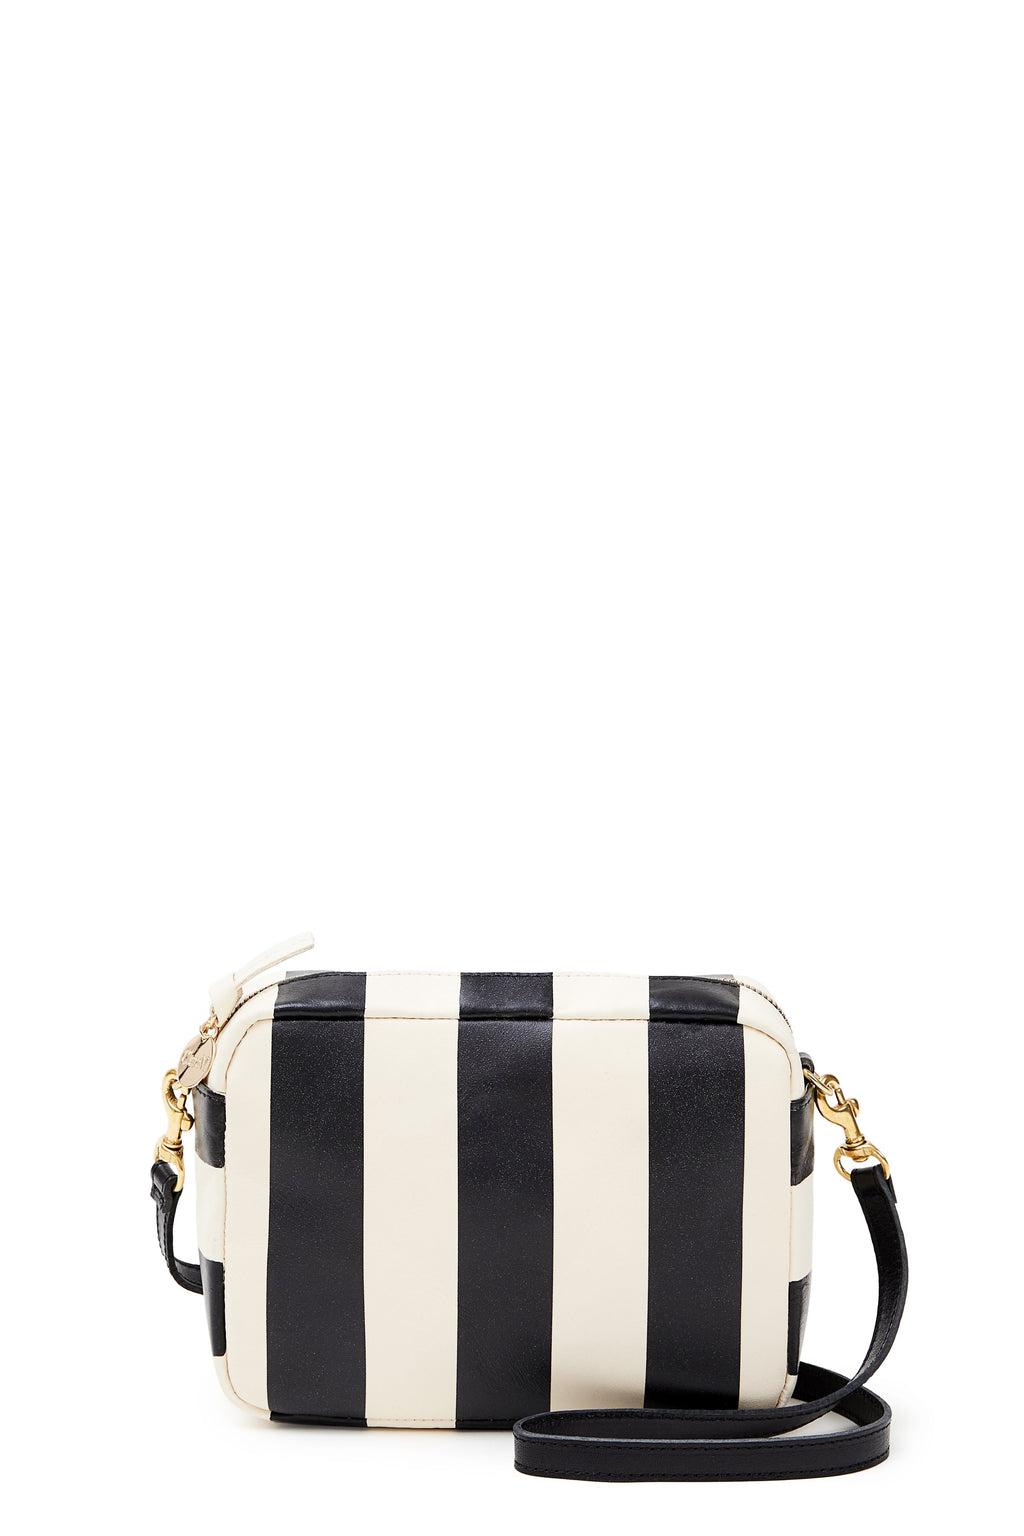 clare v. midi sac black cream stripe